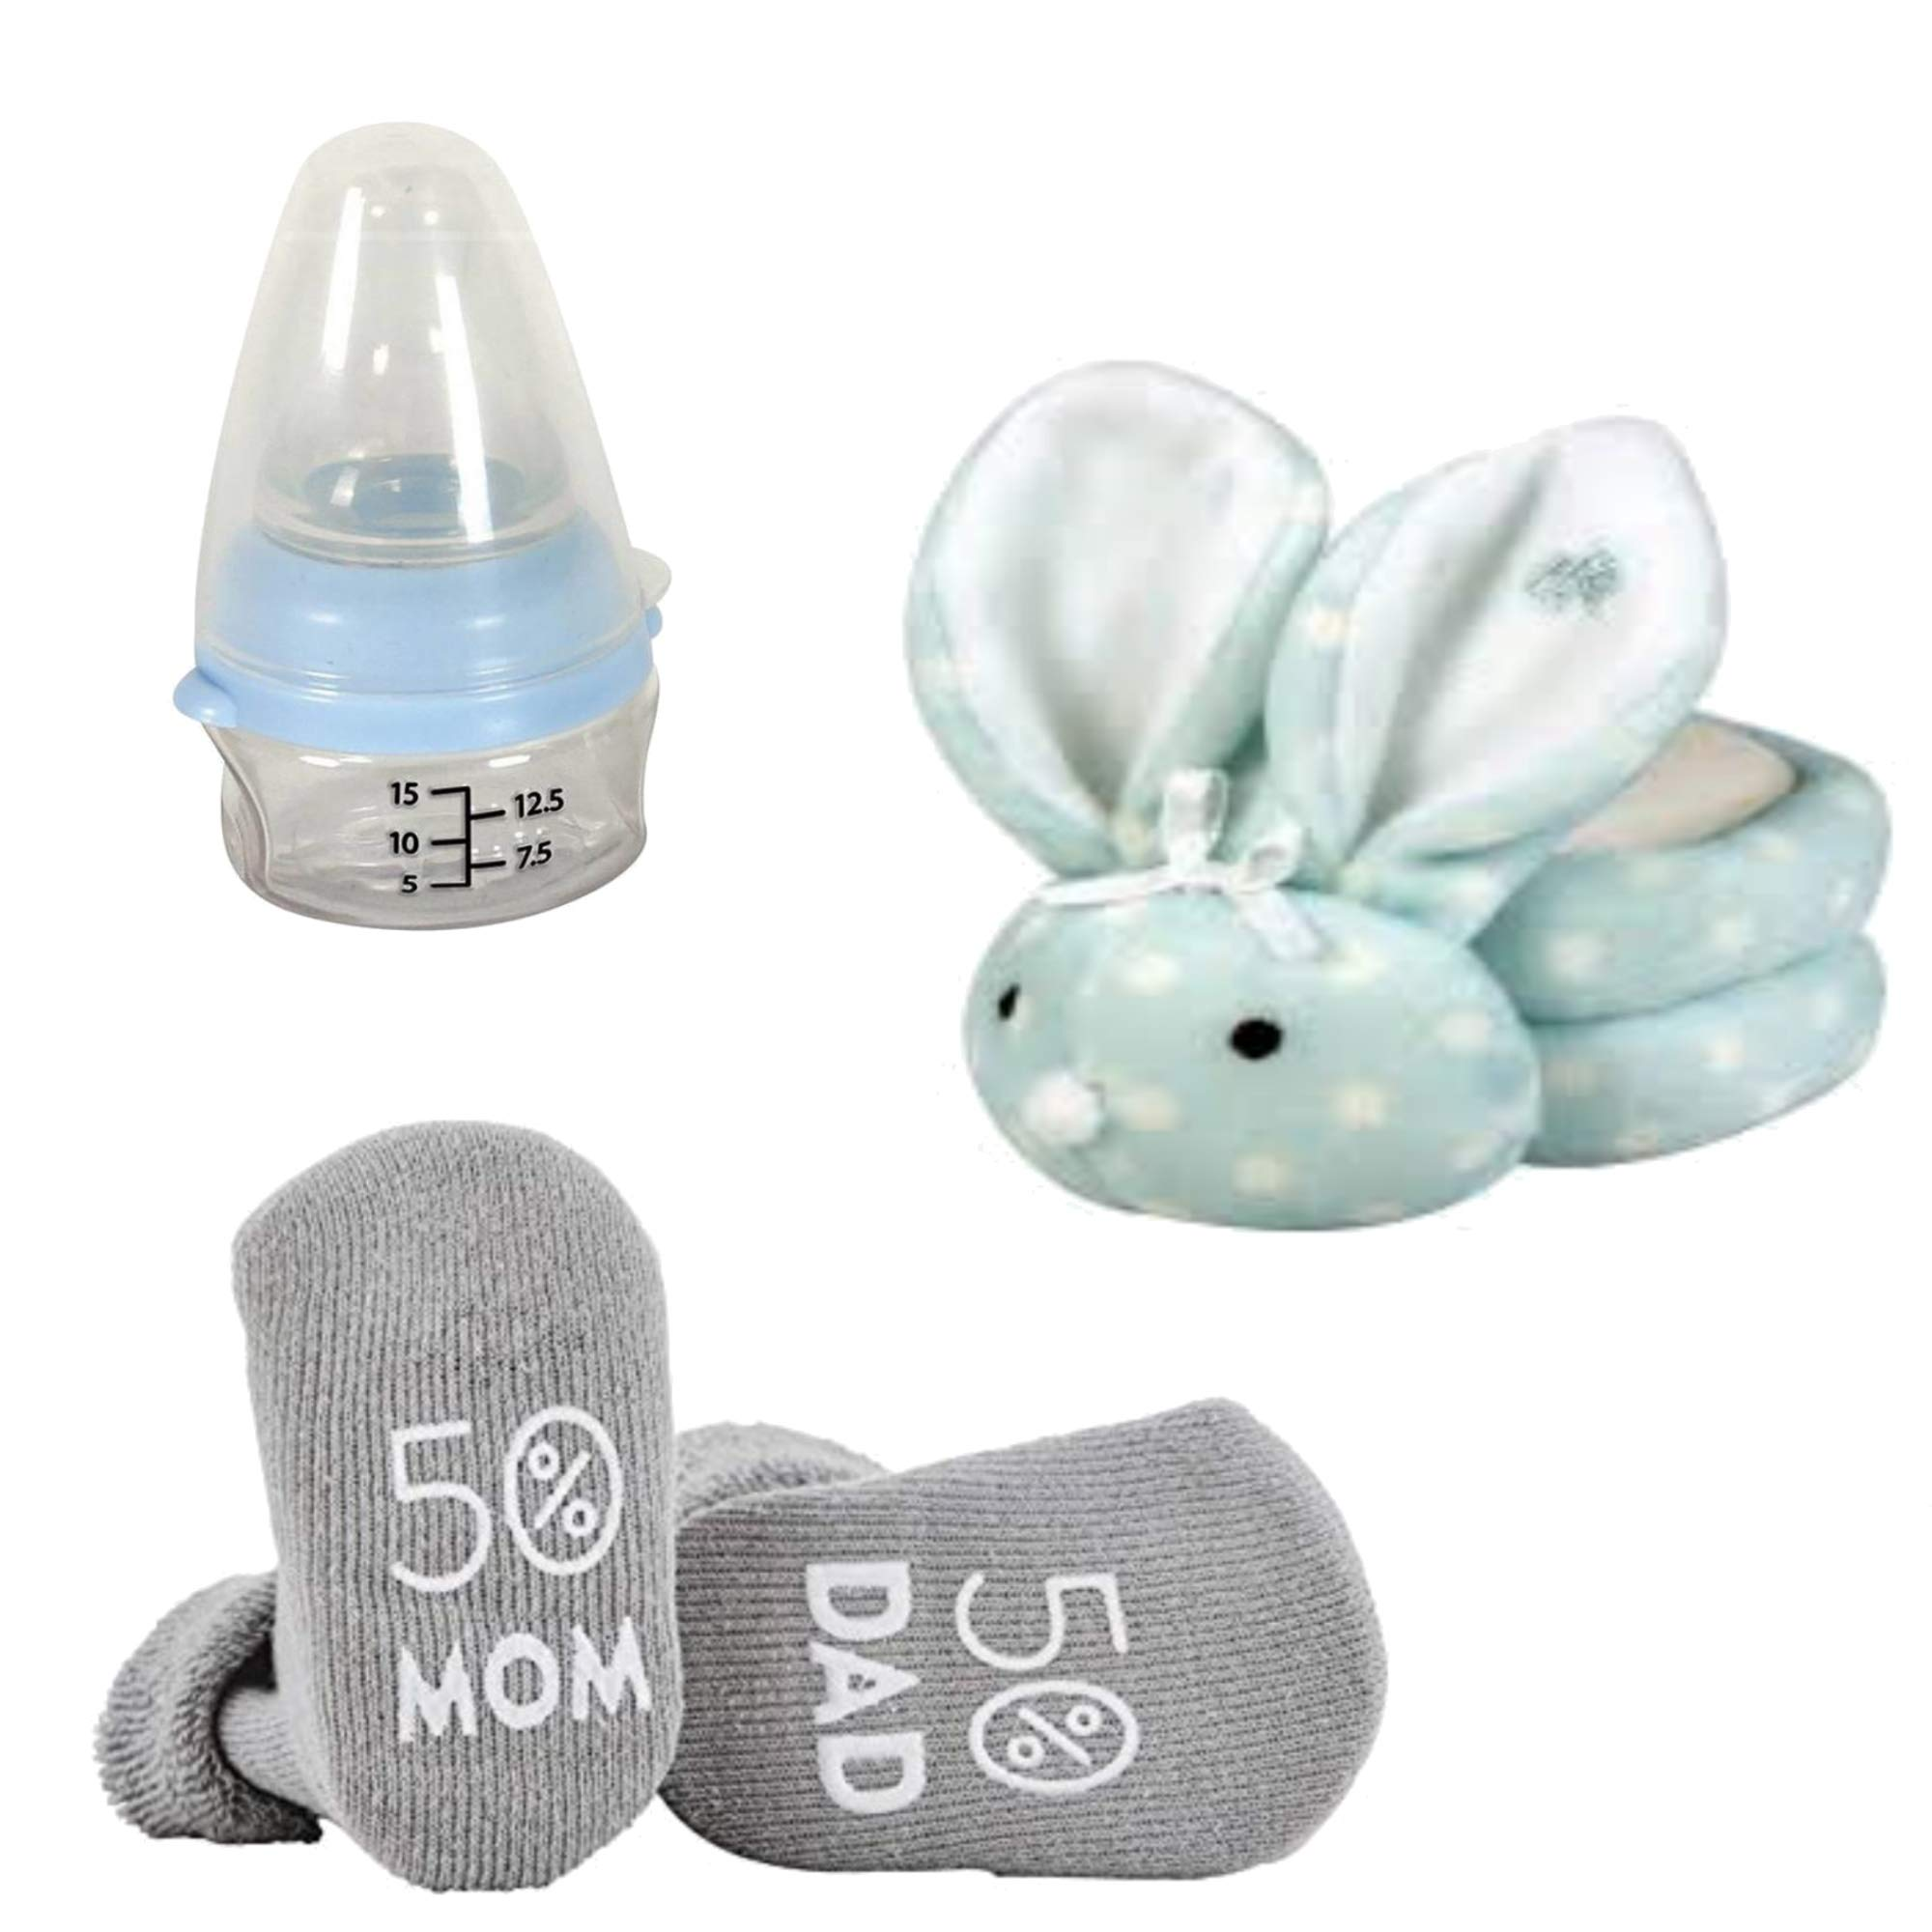 Stephan Baby Gift Set Includes 3 Items: Blue Mini Medicine Bottle, Pair of Non-Skid Silly Socks & Blue Dot Boo-Bunnie Comfort Toy by Stephan Baby